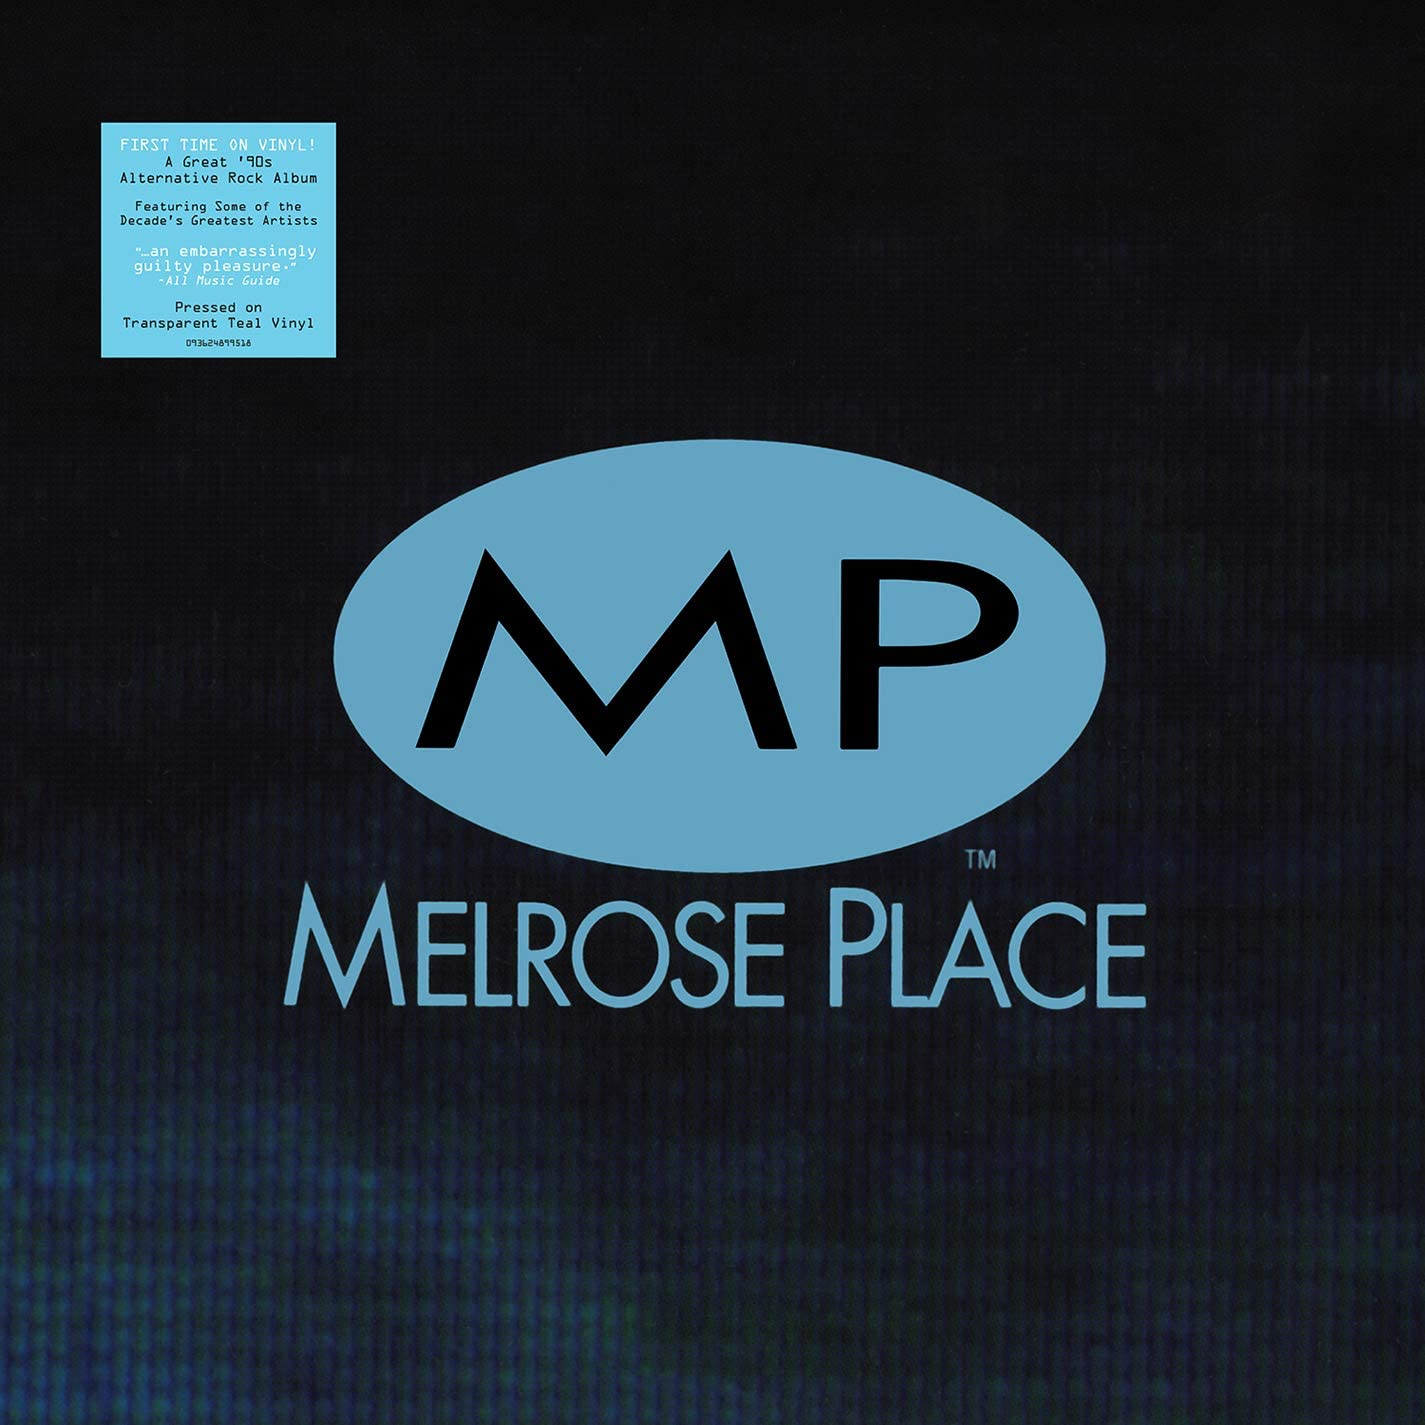 Soundtrack/Melrose Place: The Music [LP]